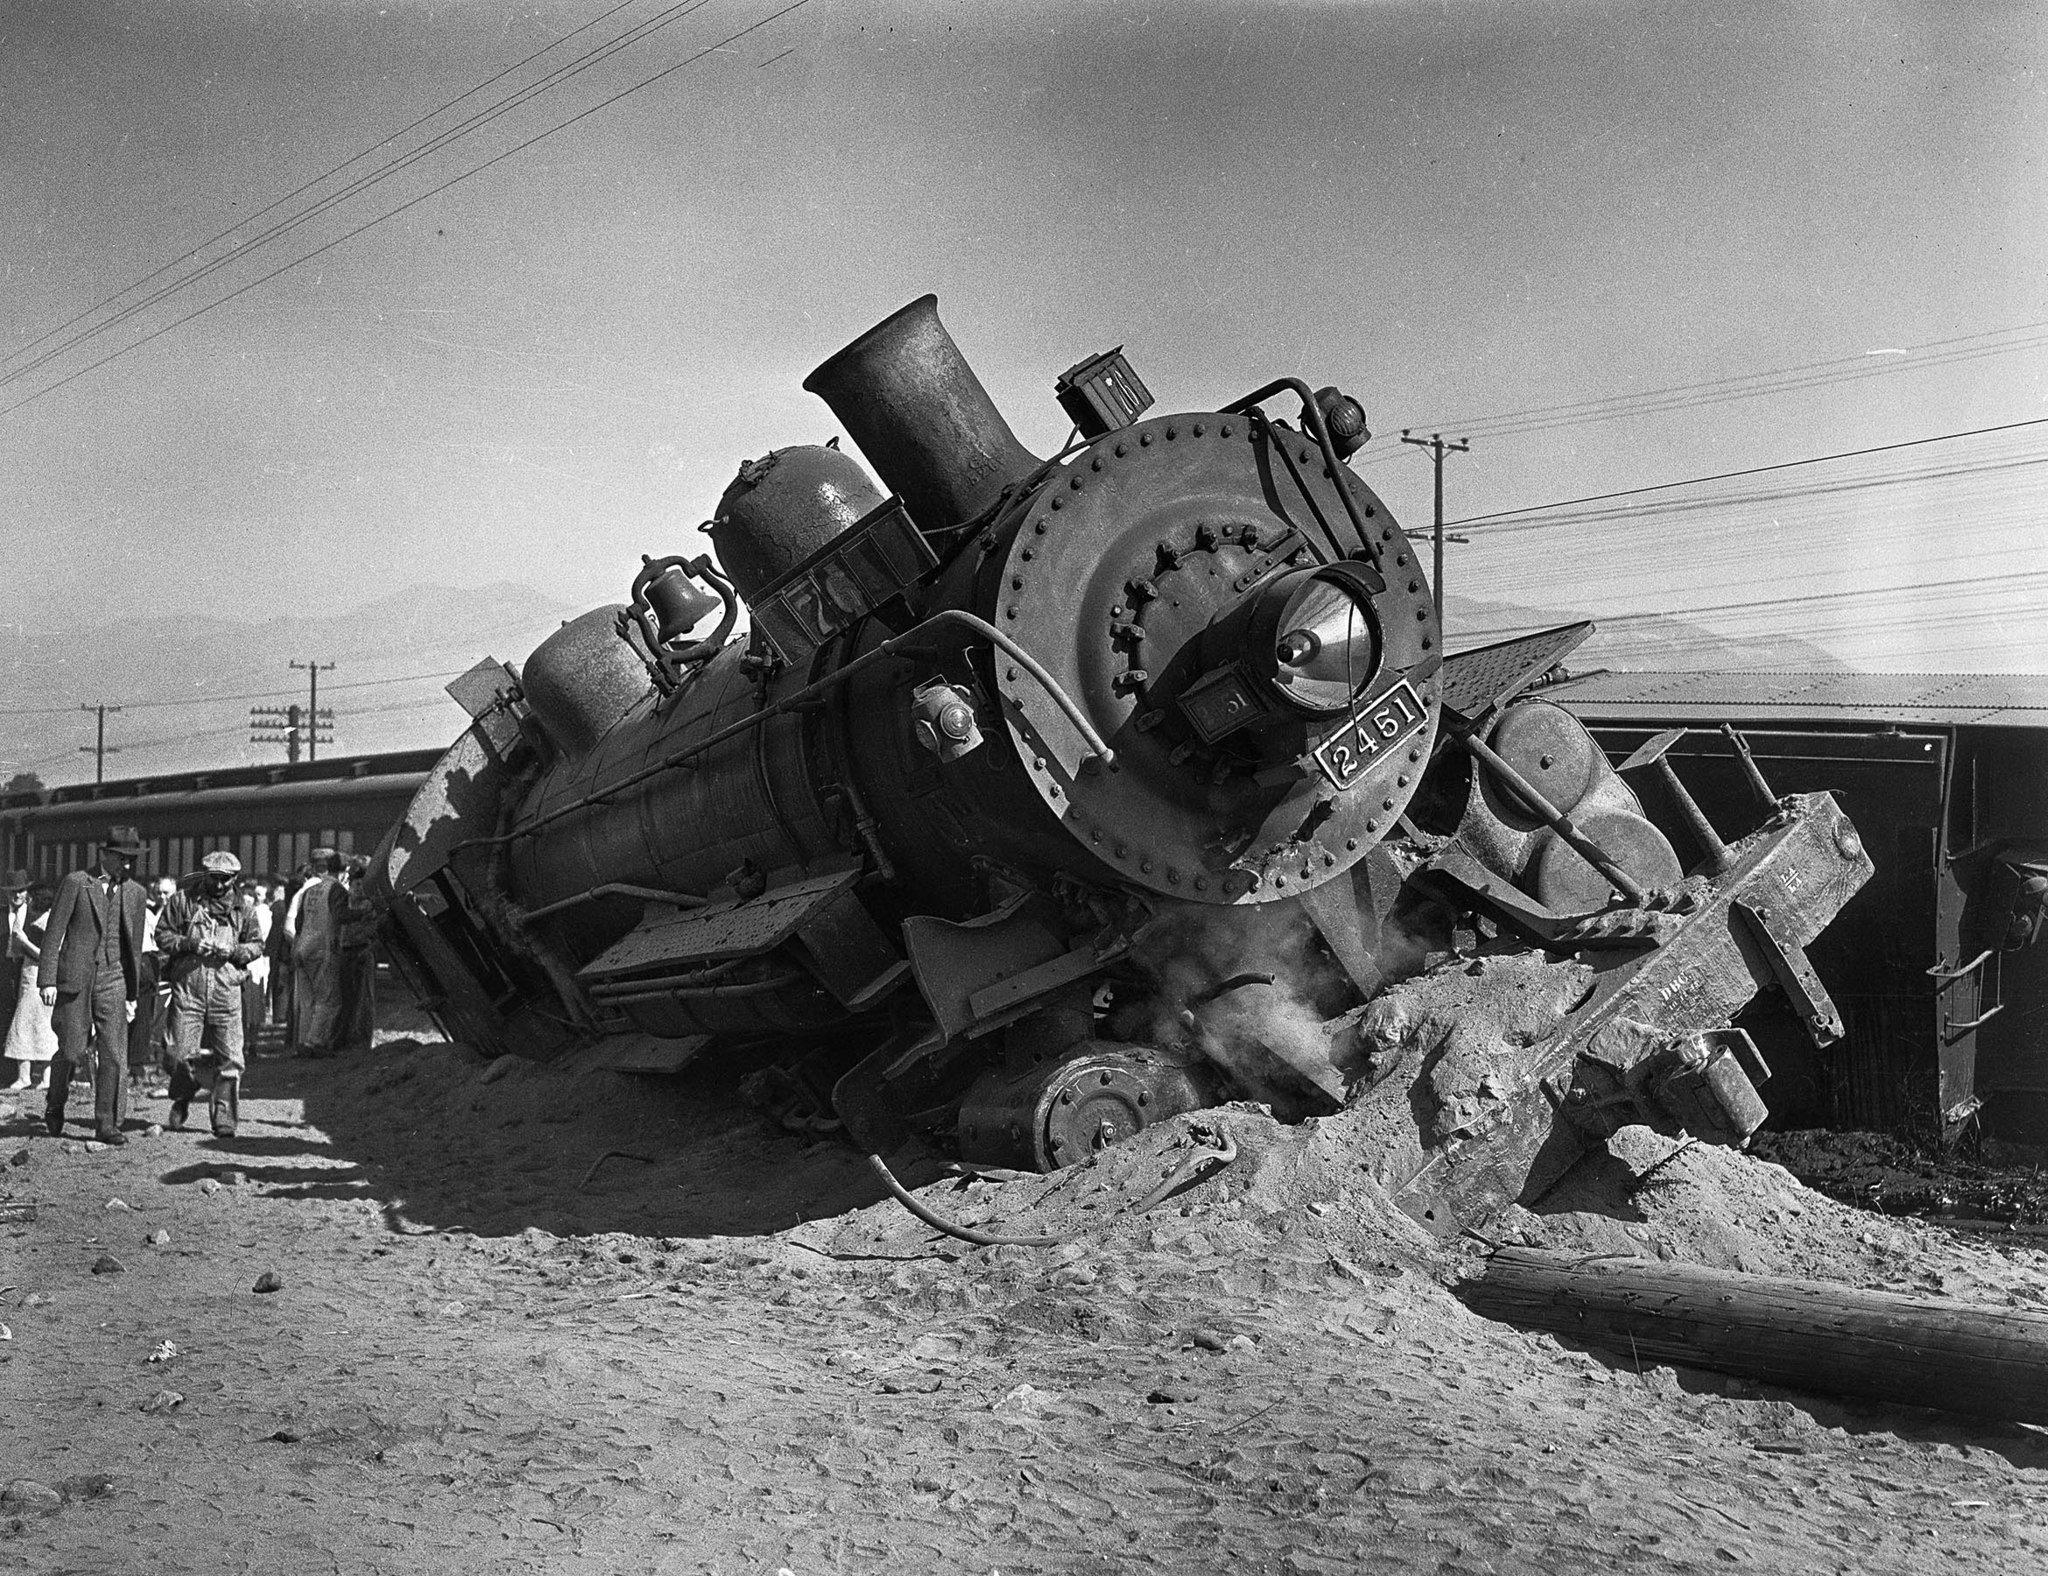 From the Archives: 1935 train wreck in Glendale hurts dozen